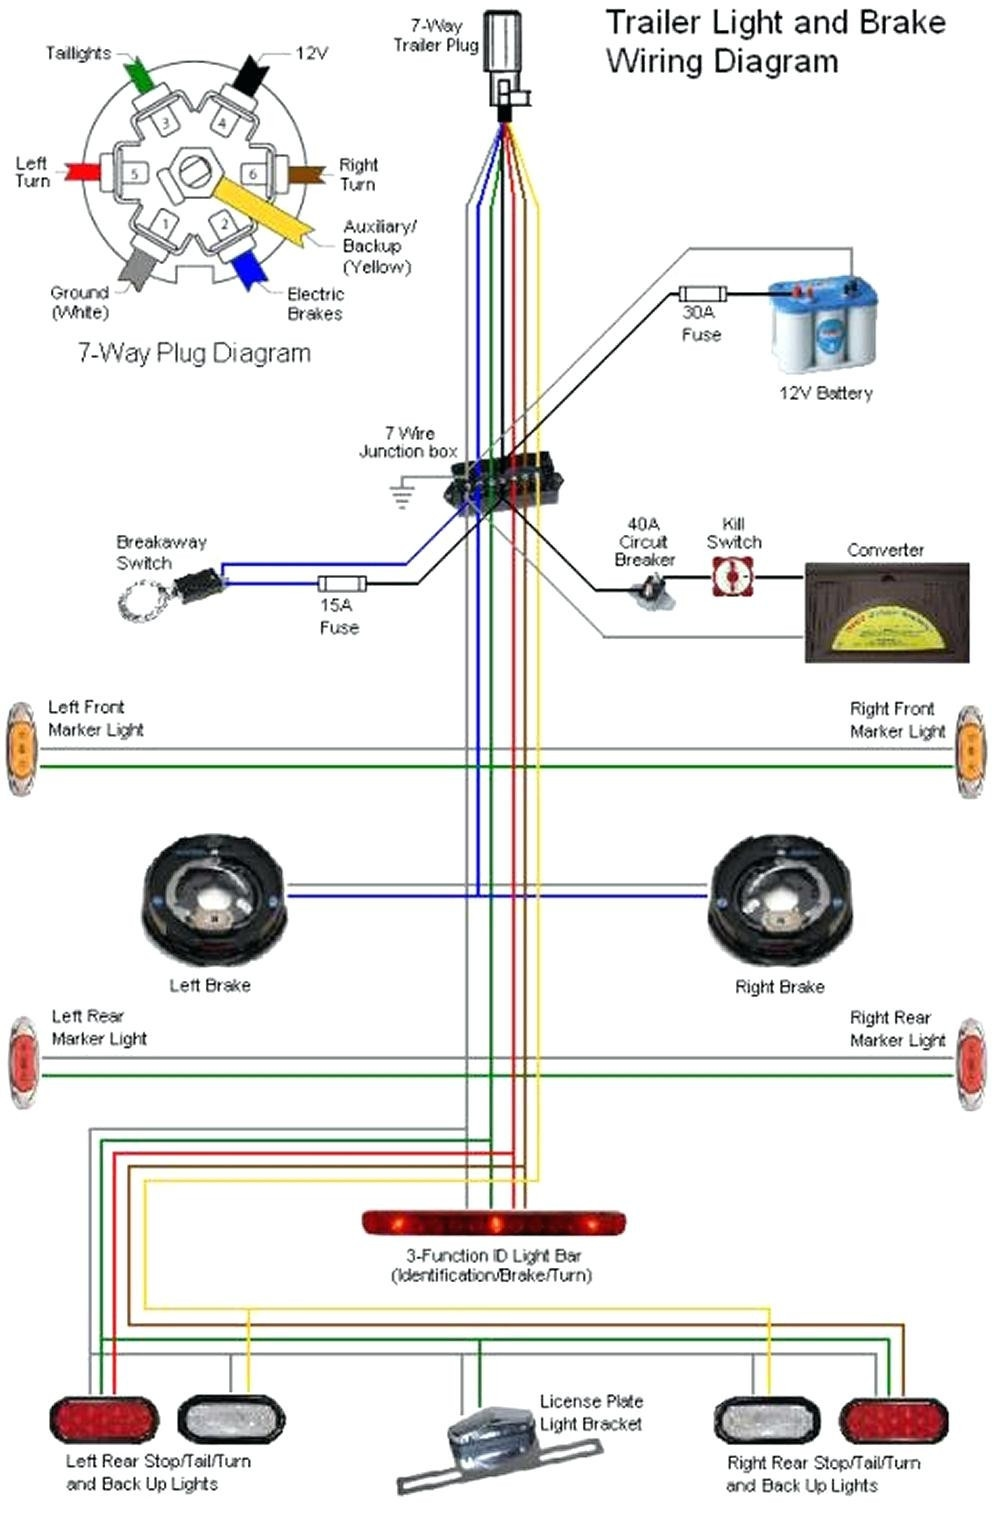 Vs 6466 Wiring Diagrams 4 Pin Trailer Wiring Diagram